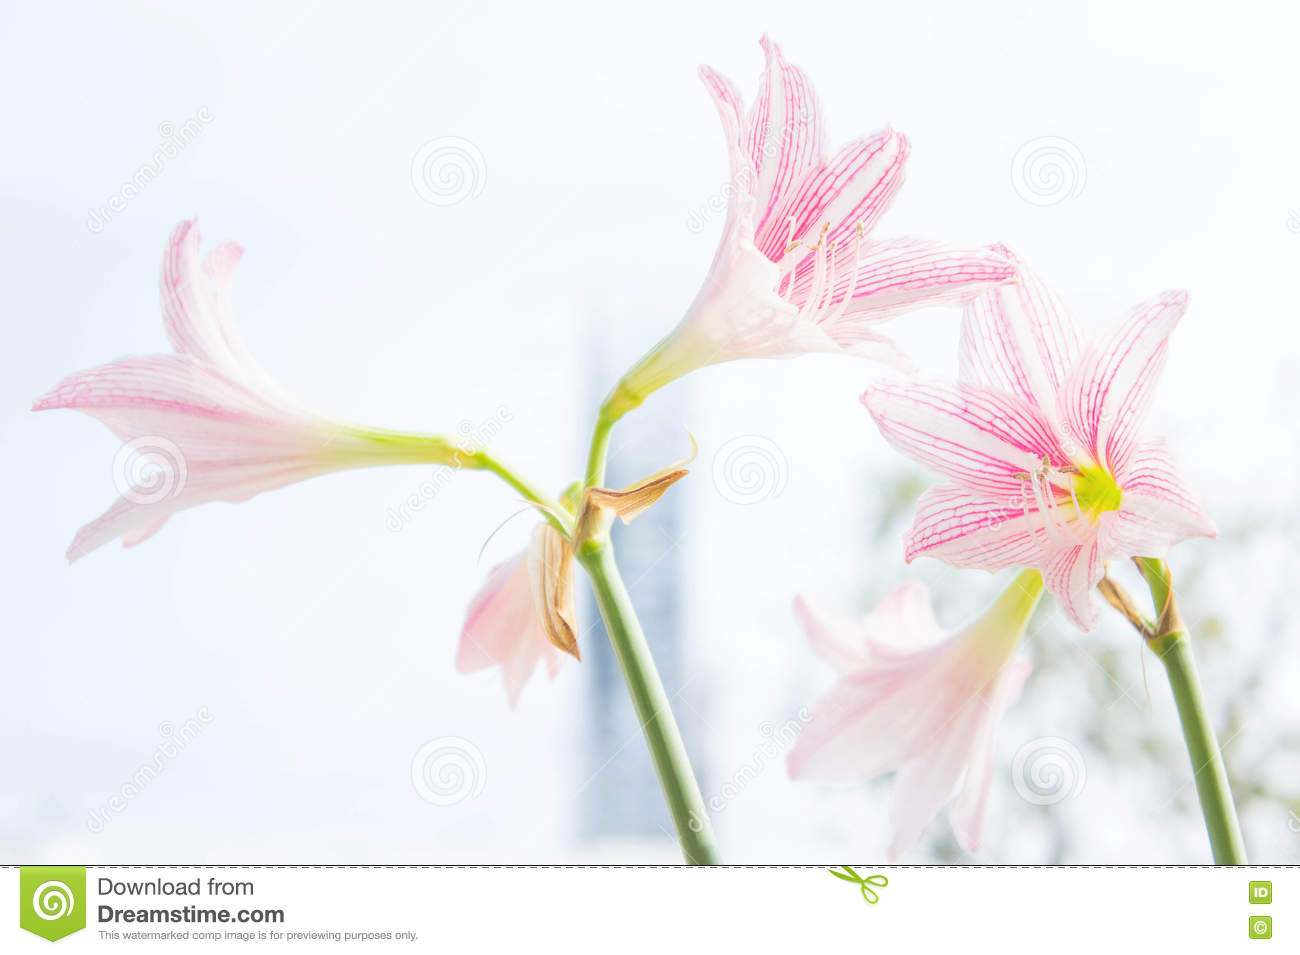 Flower hippeastrum looks like a lily white with pink stripes pl download flower hippeastrum looks like a lily white with pink stripes pl stock photo izmirmasajfo